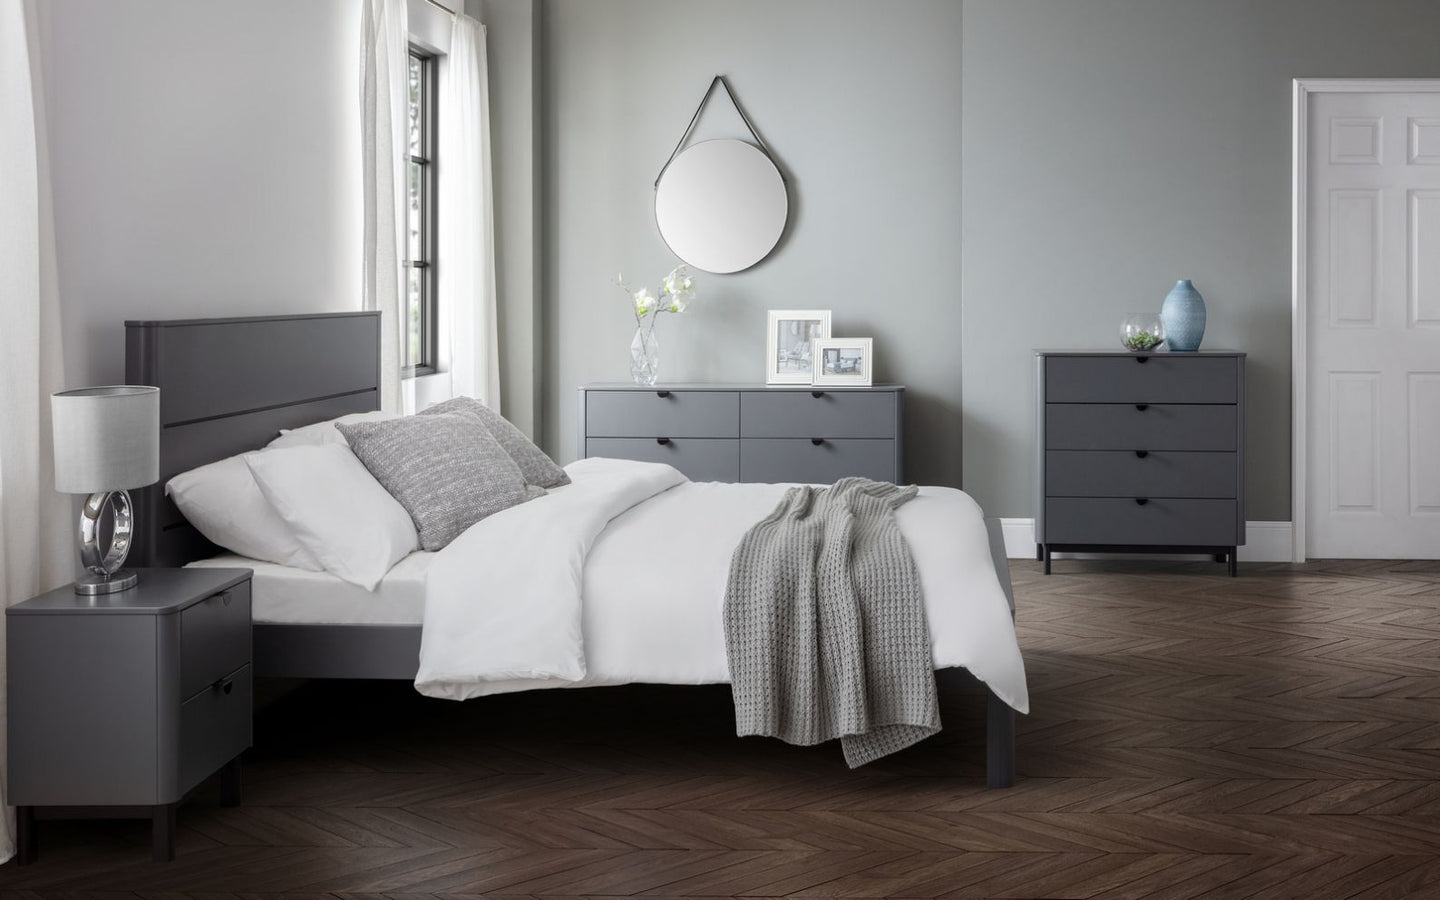 CHLOE BEDROOM COLLECTION